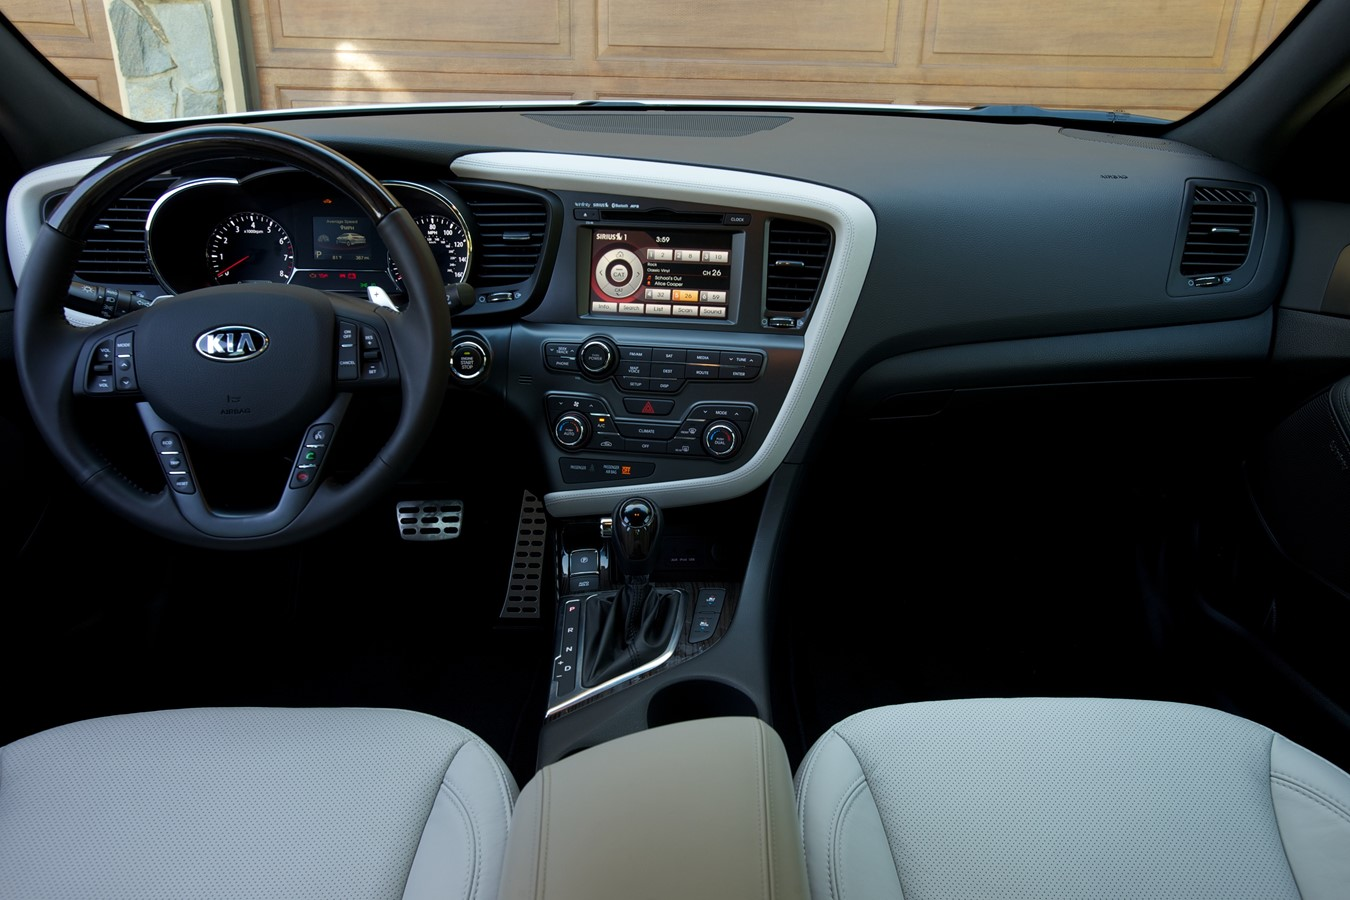 The 2013 Kia Optima